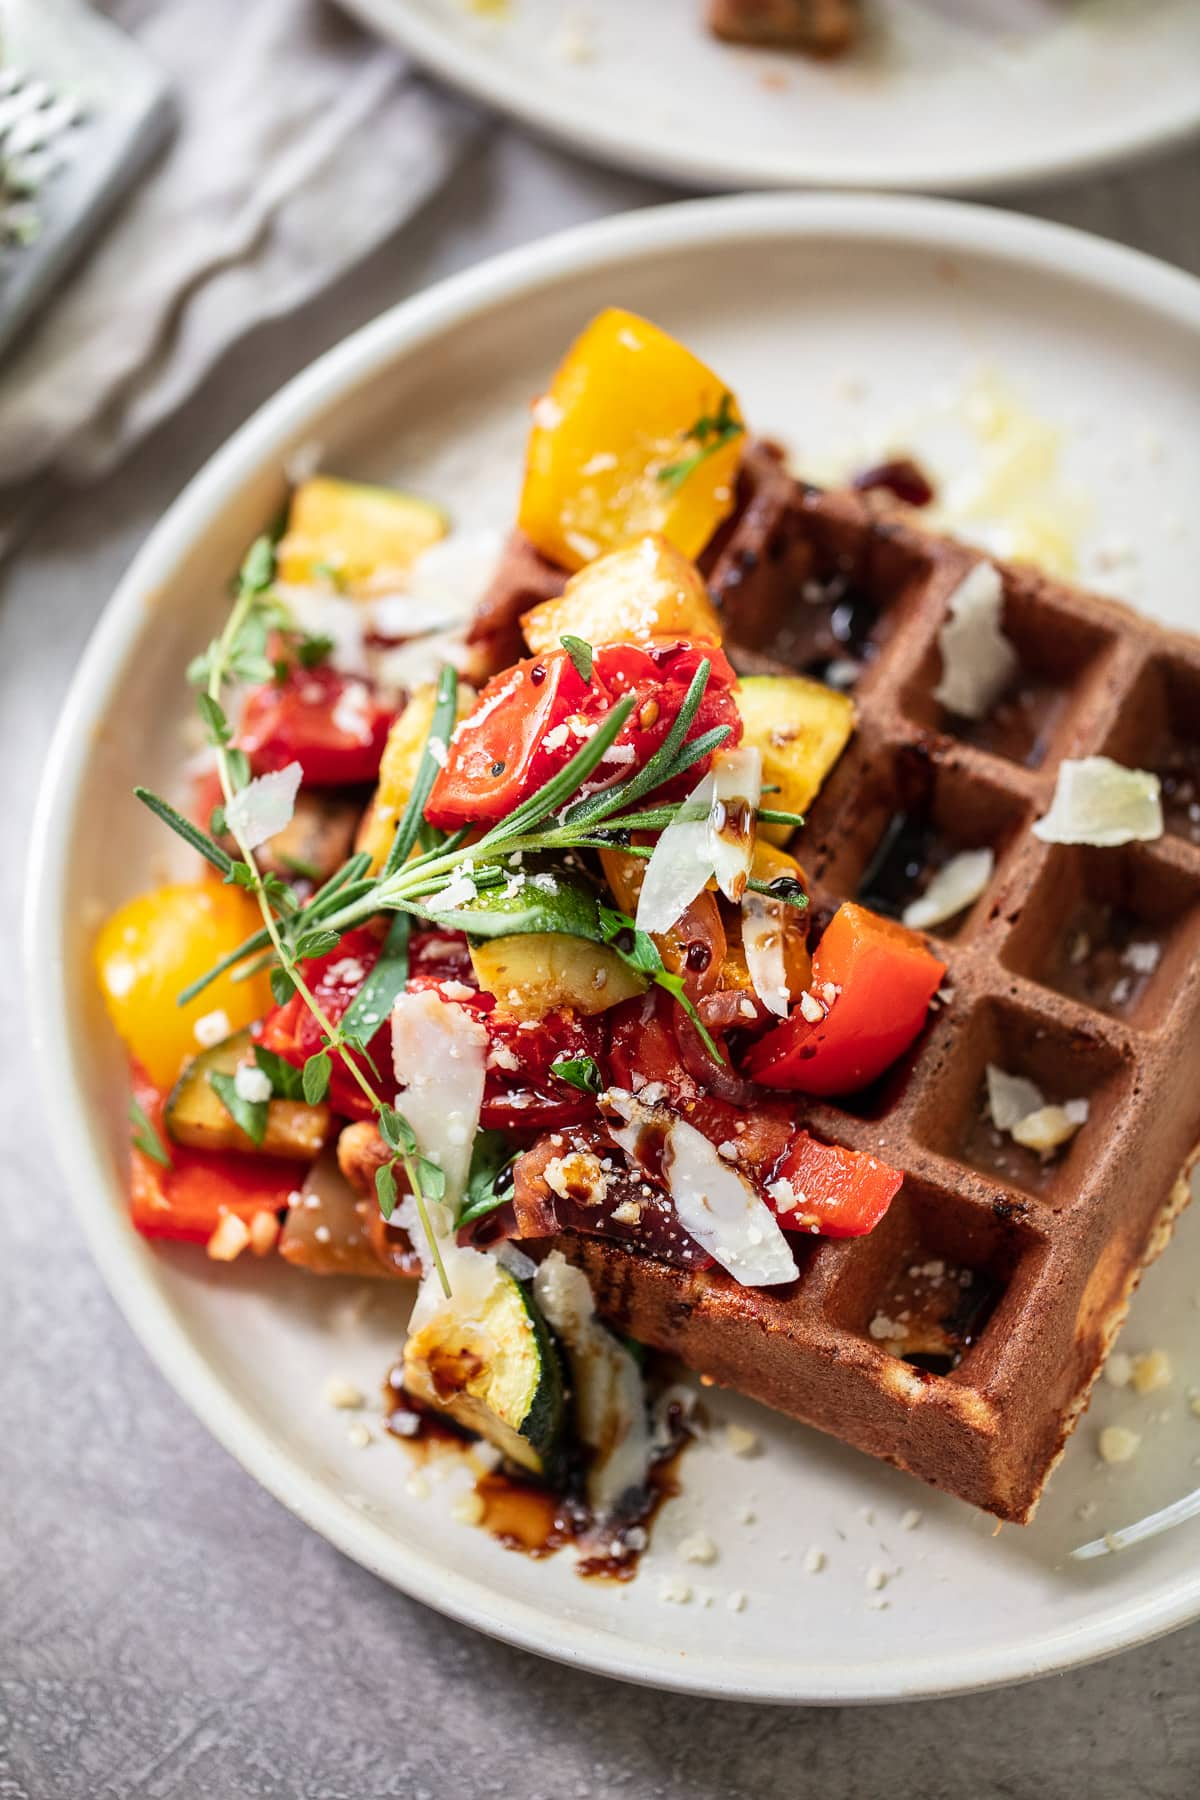 Savory Whole Grain Parmesan Waffles with Roasted Vegetables